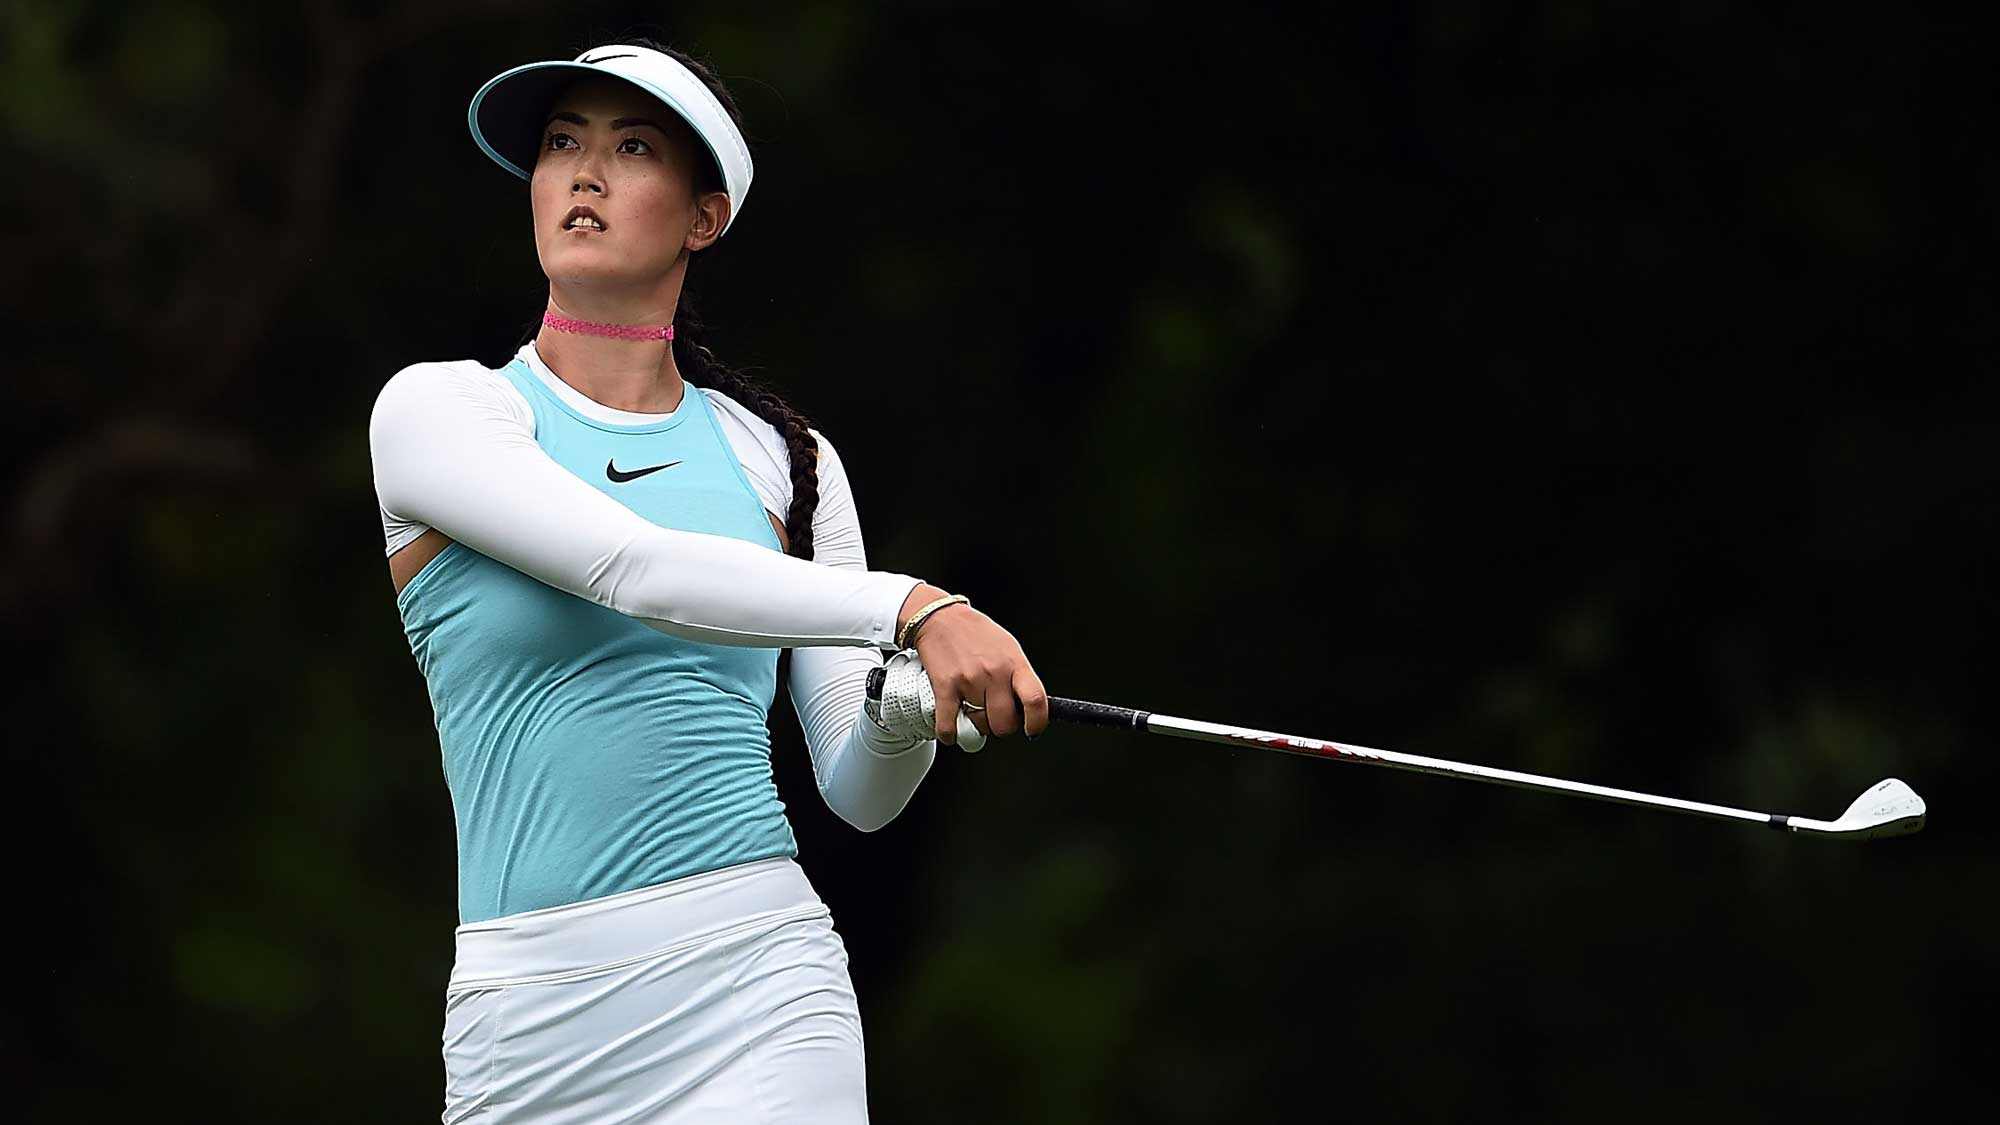 Michelle Wie hits her tee shot on the second hole during the third round of the Meijer LPGA Classic